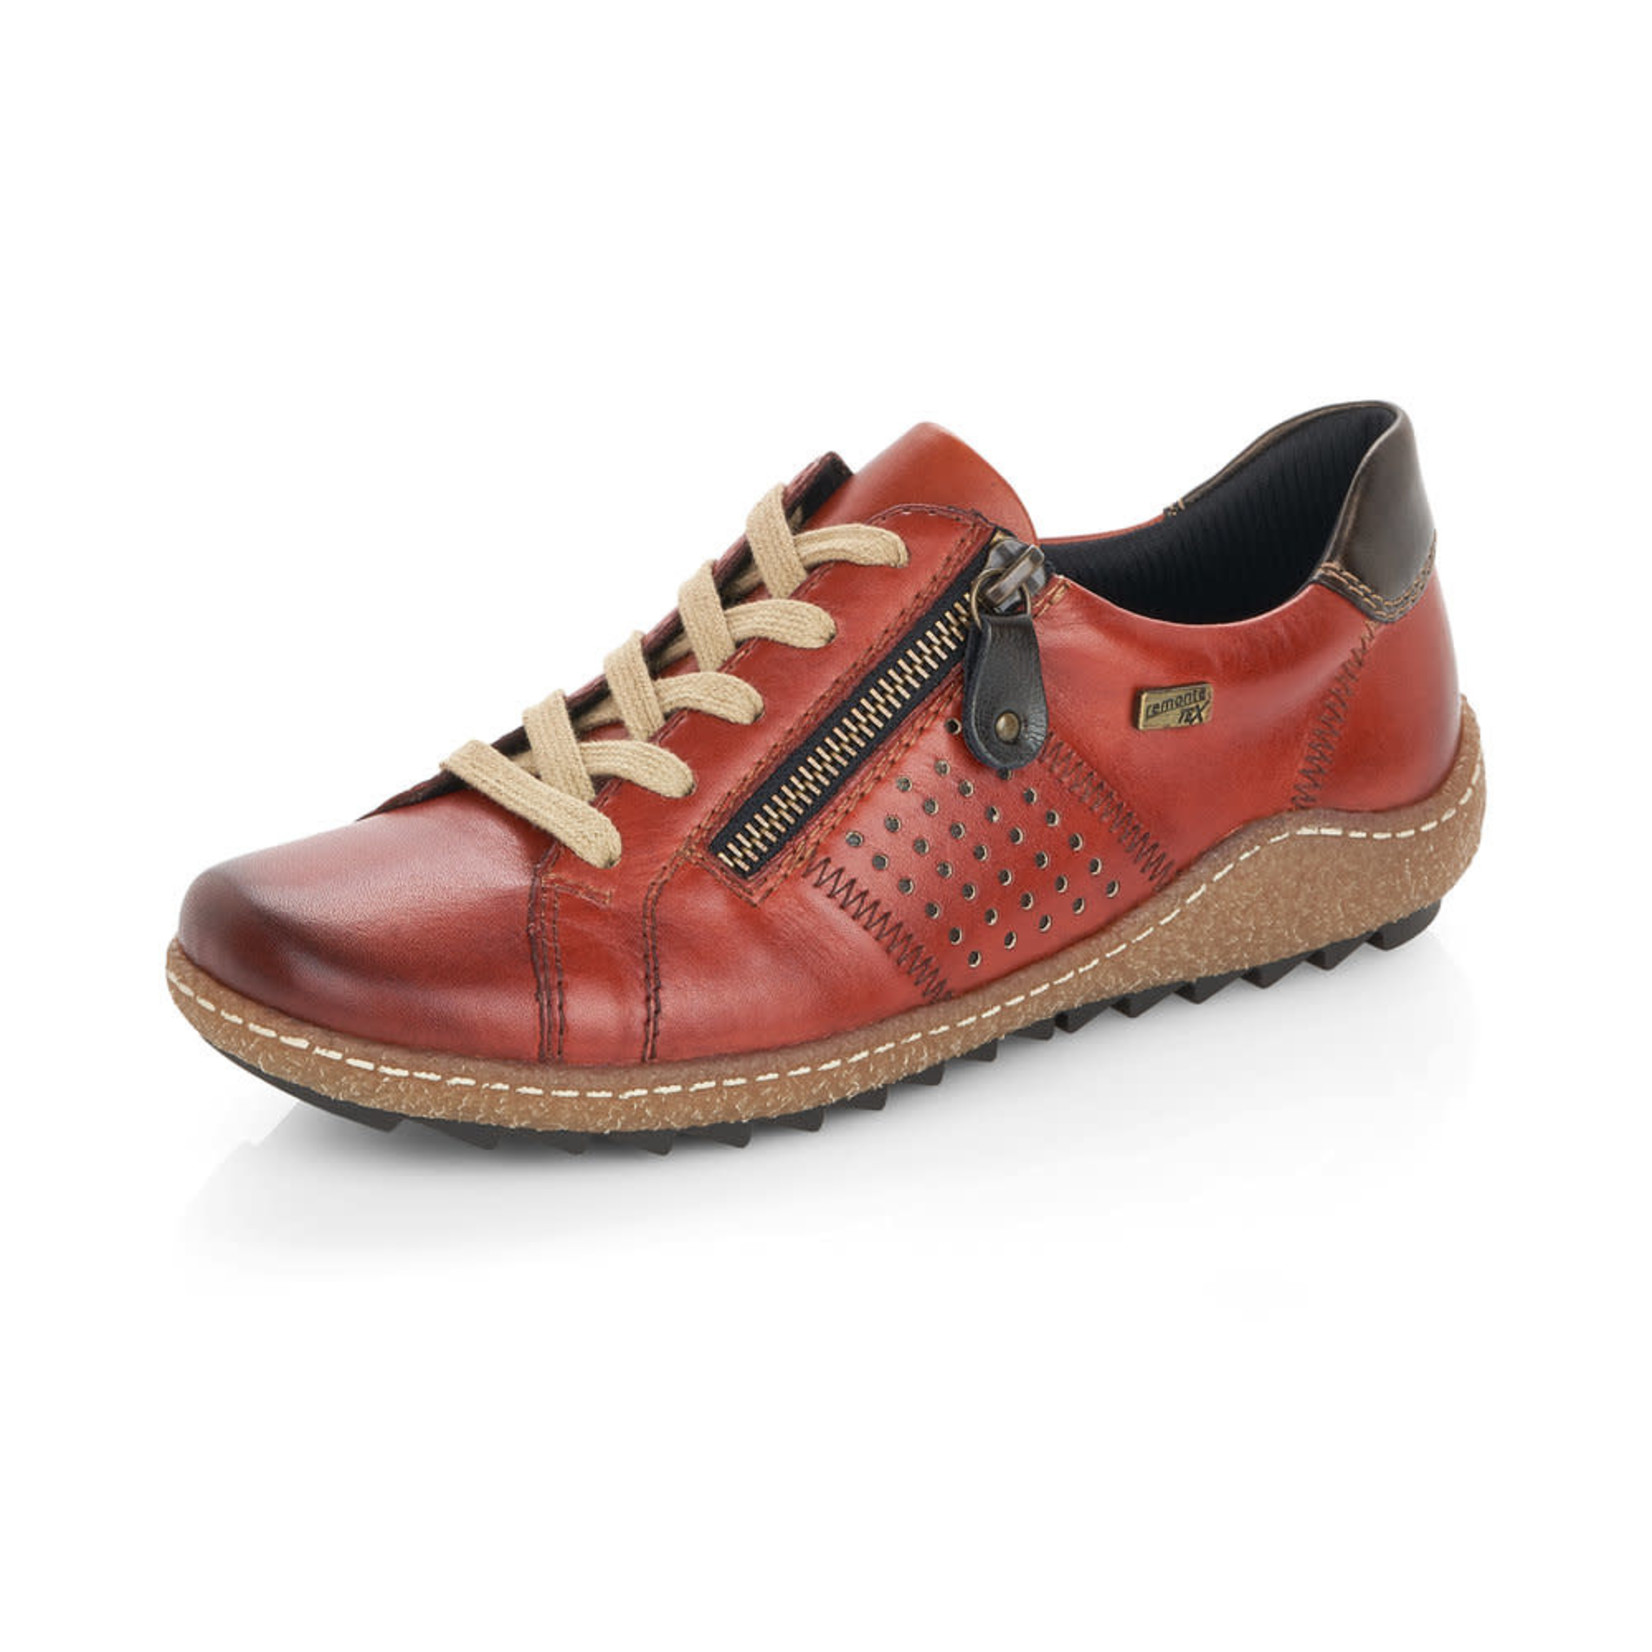 Remonte Remonte R4717-38 only size 36